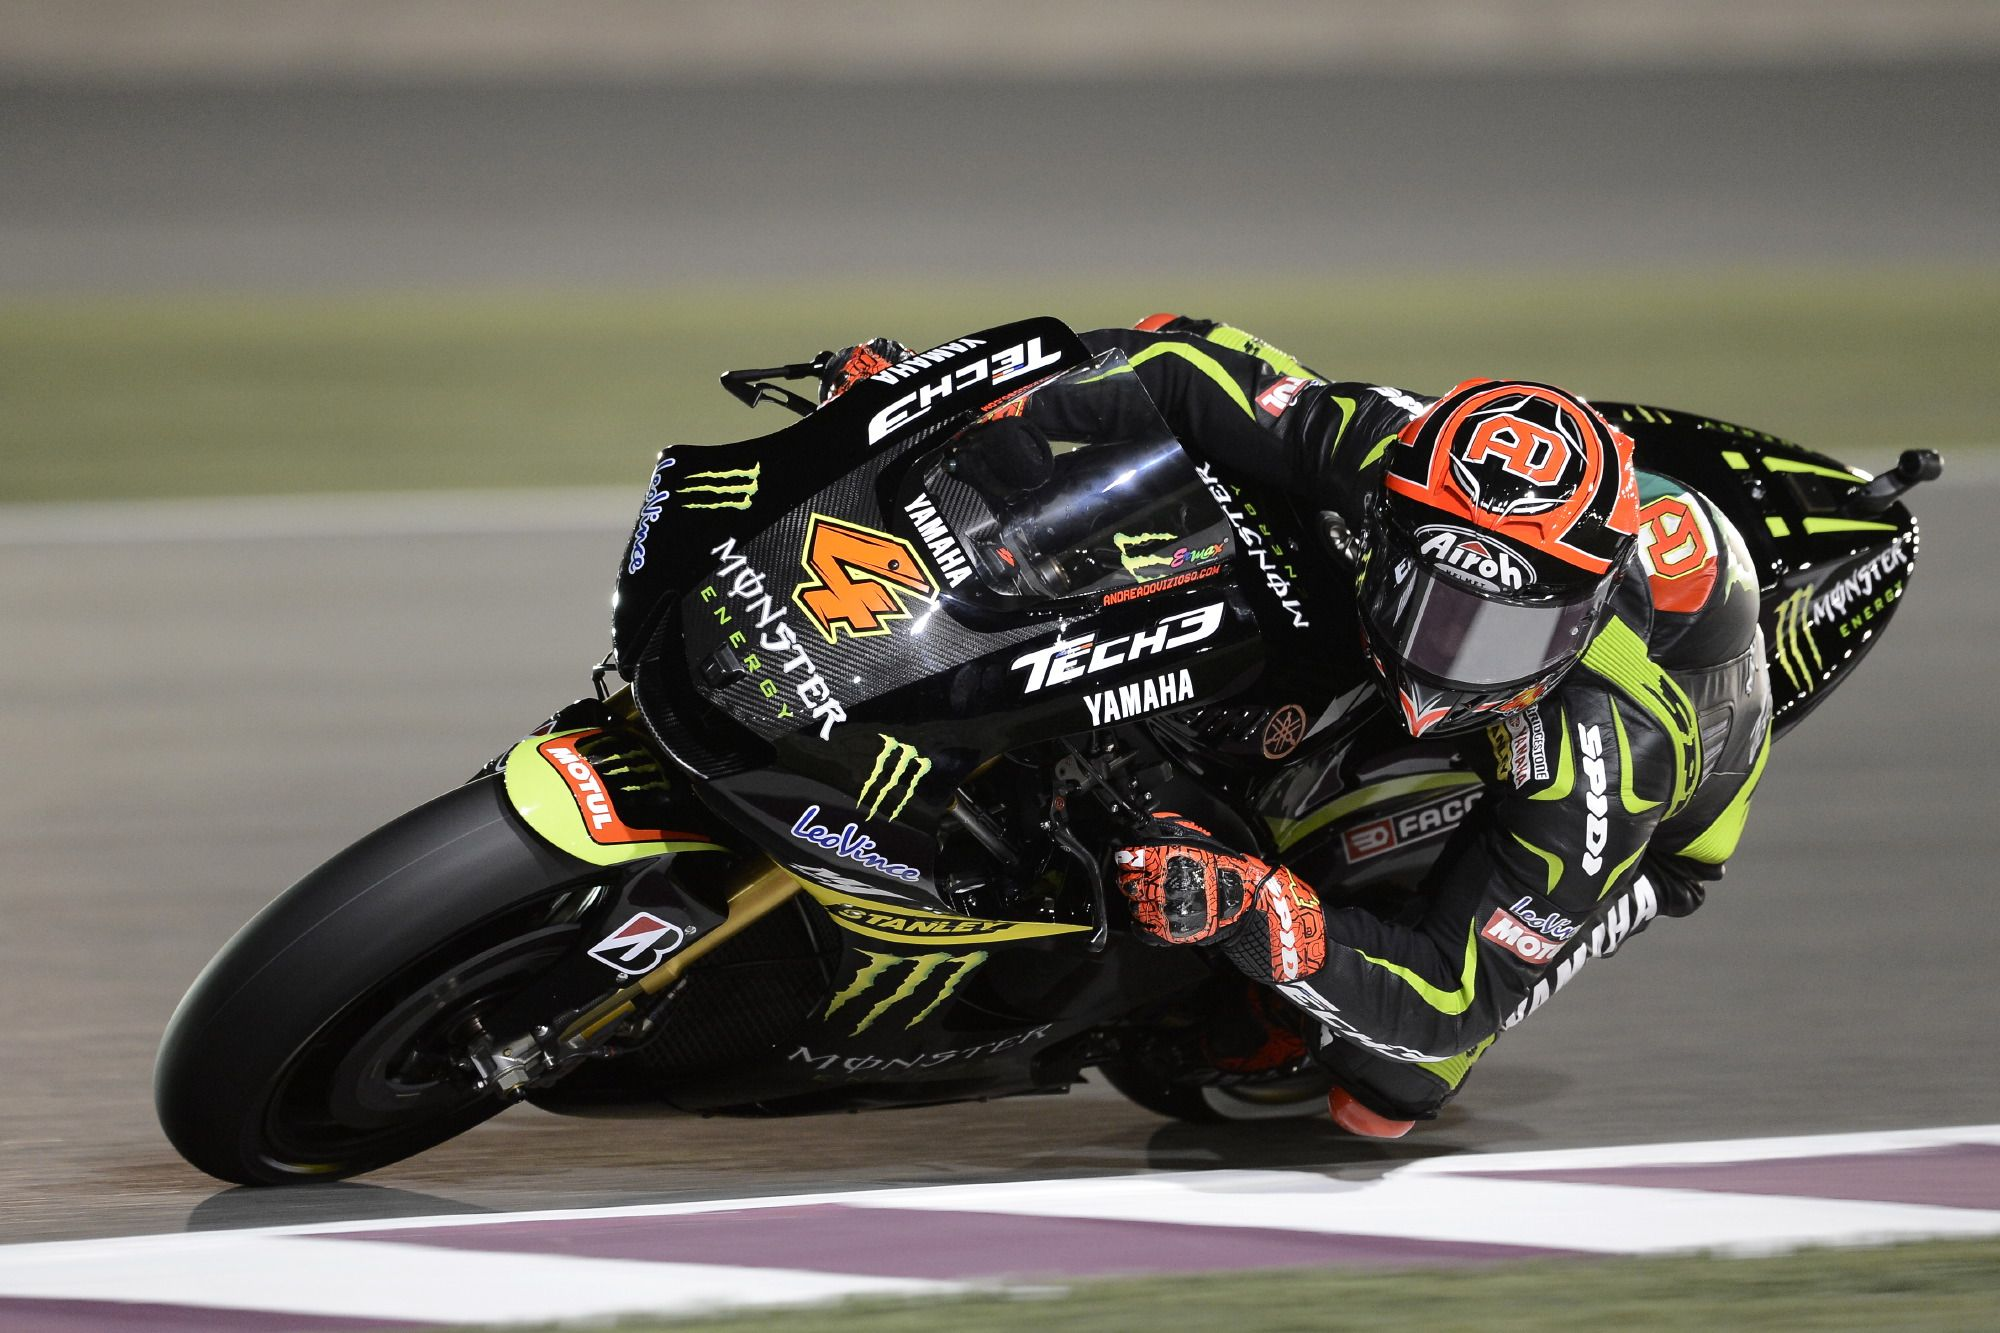 Doha, QAT - Andrea Dovizioso on his Monster Yamaha at Qatar, spent the first 16 laps fending off Monster Yamaha tech 3 team-mate Cal Crutchlow for fourth place, and top satellite rider, before the Englishman finally found a way past. #motogp